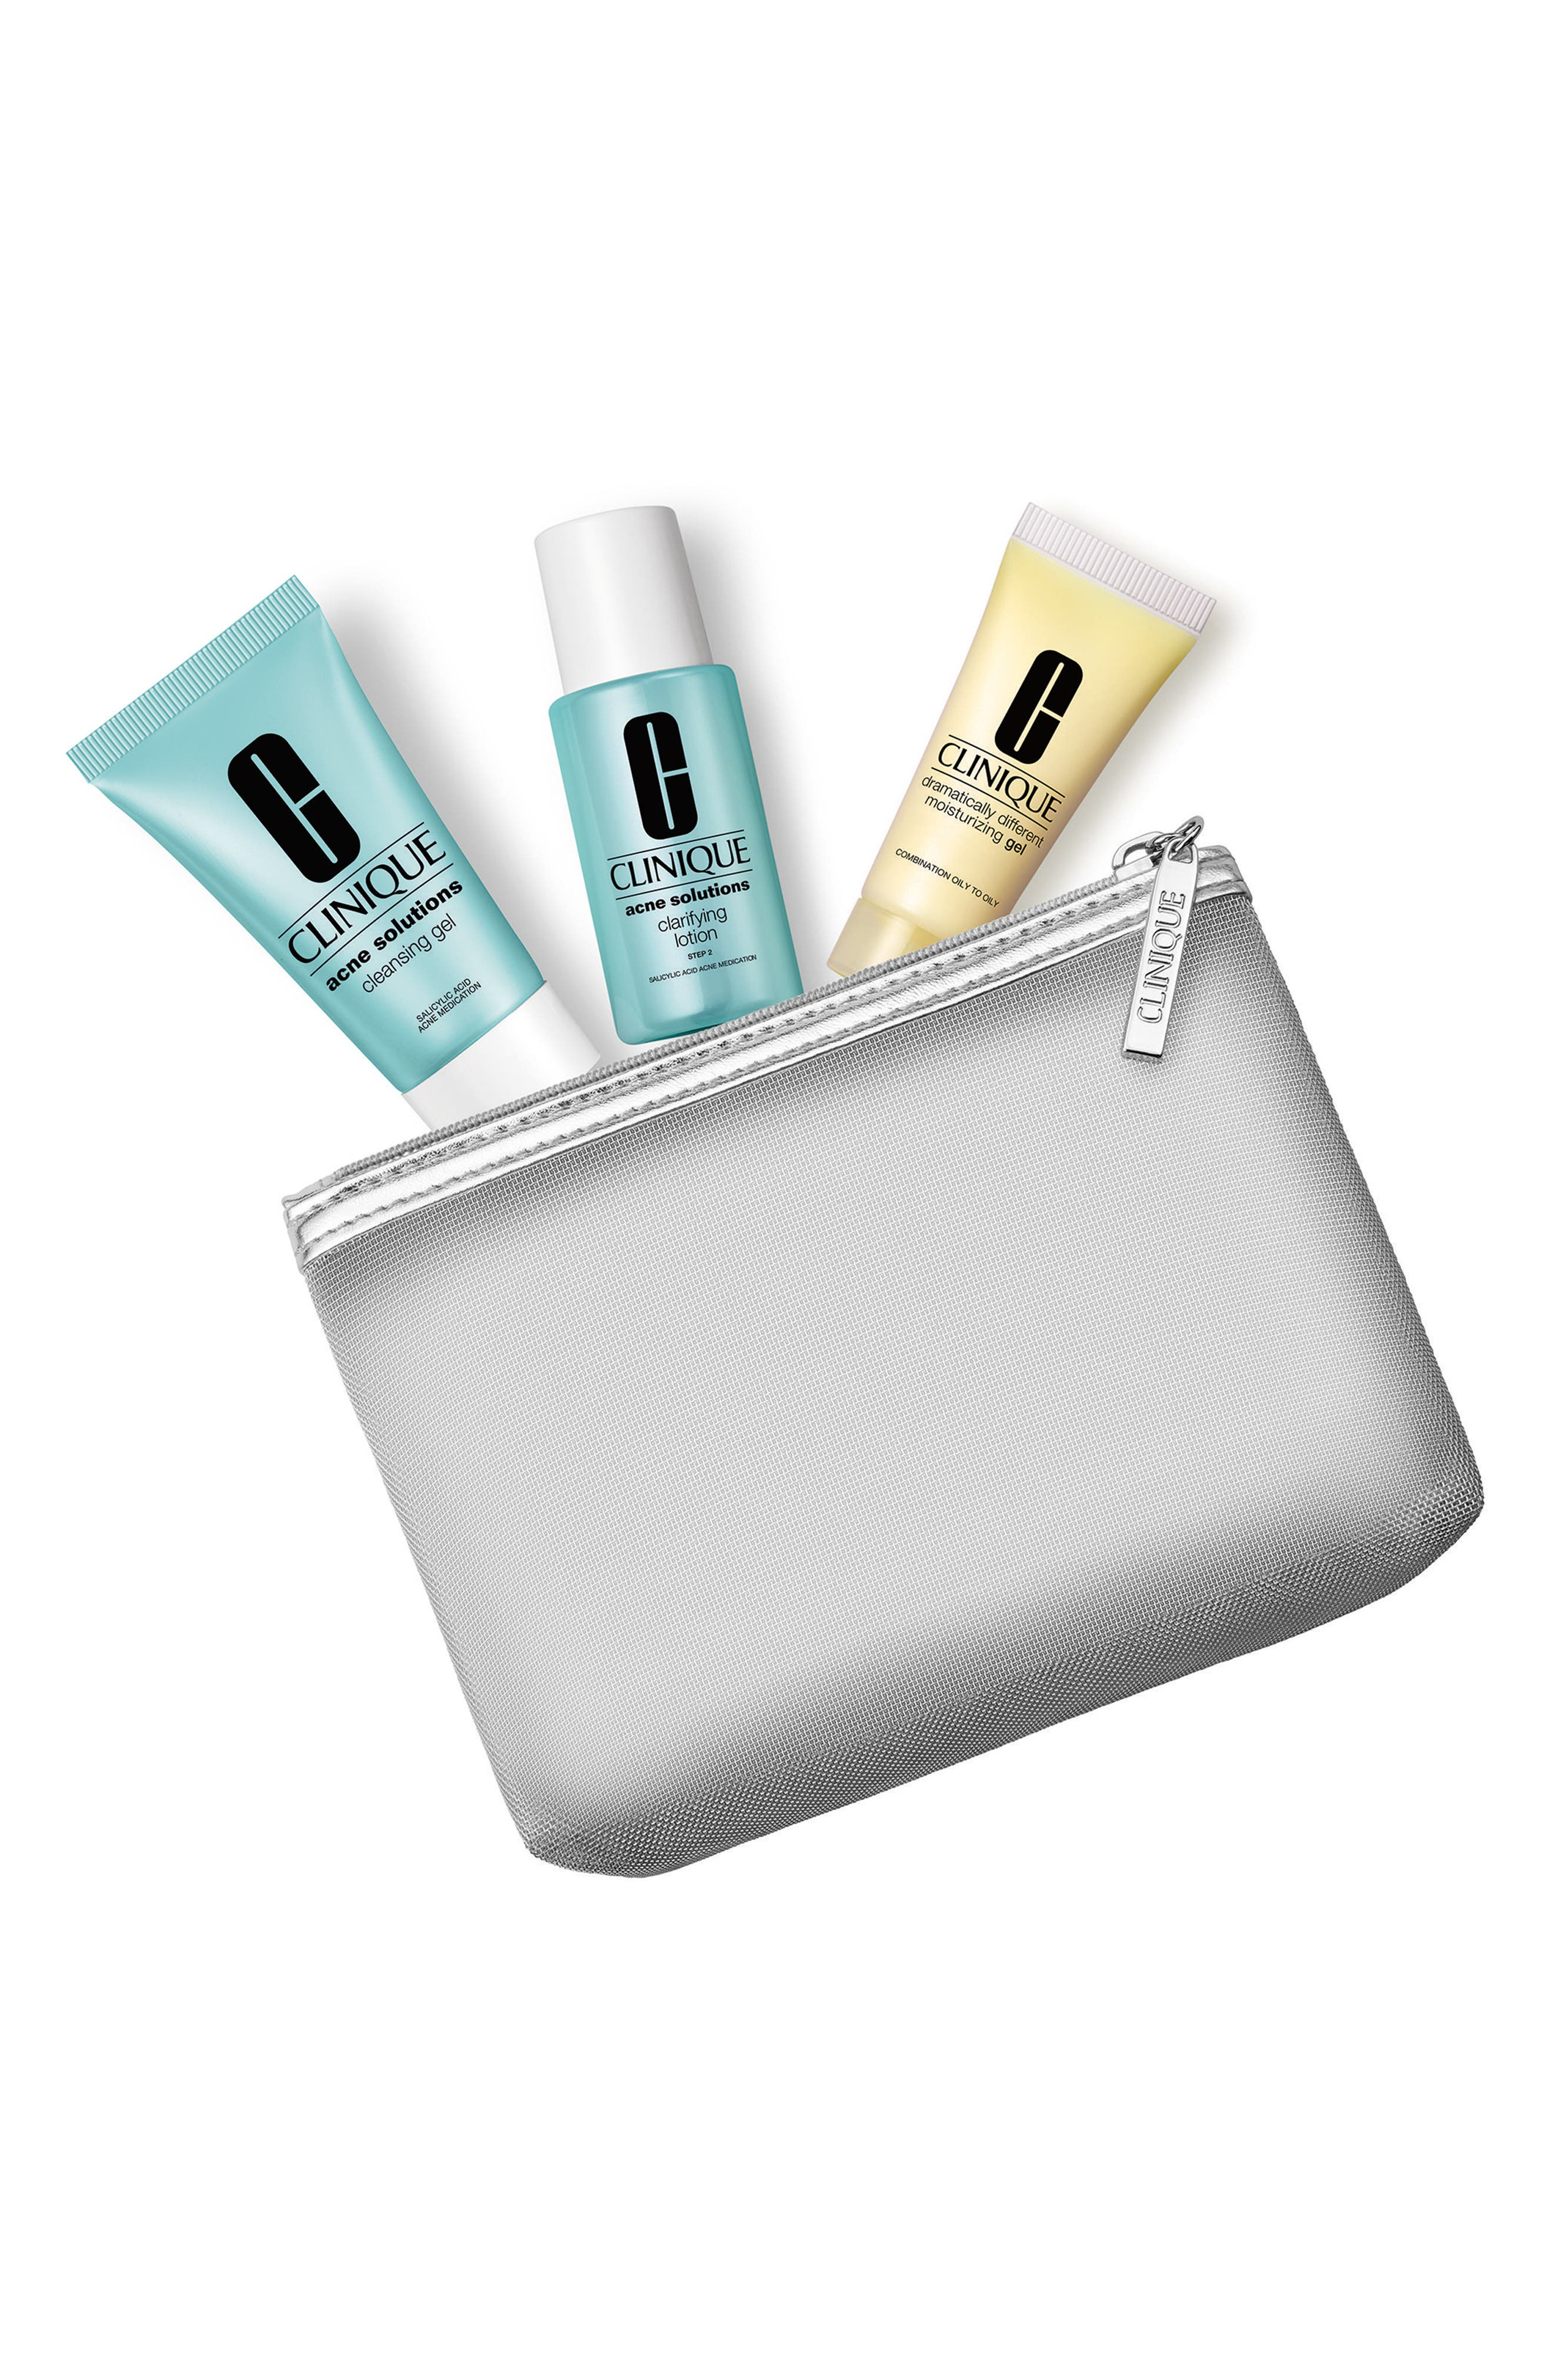 Main Image - Clinique Clear Skin Kit